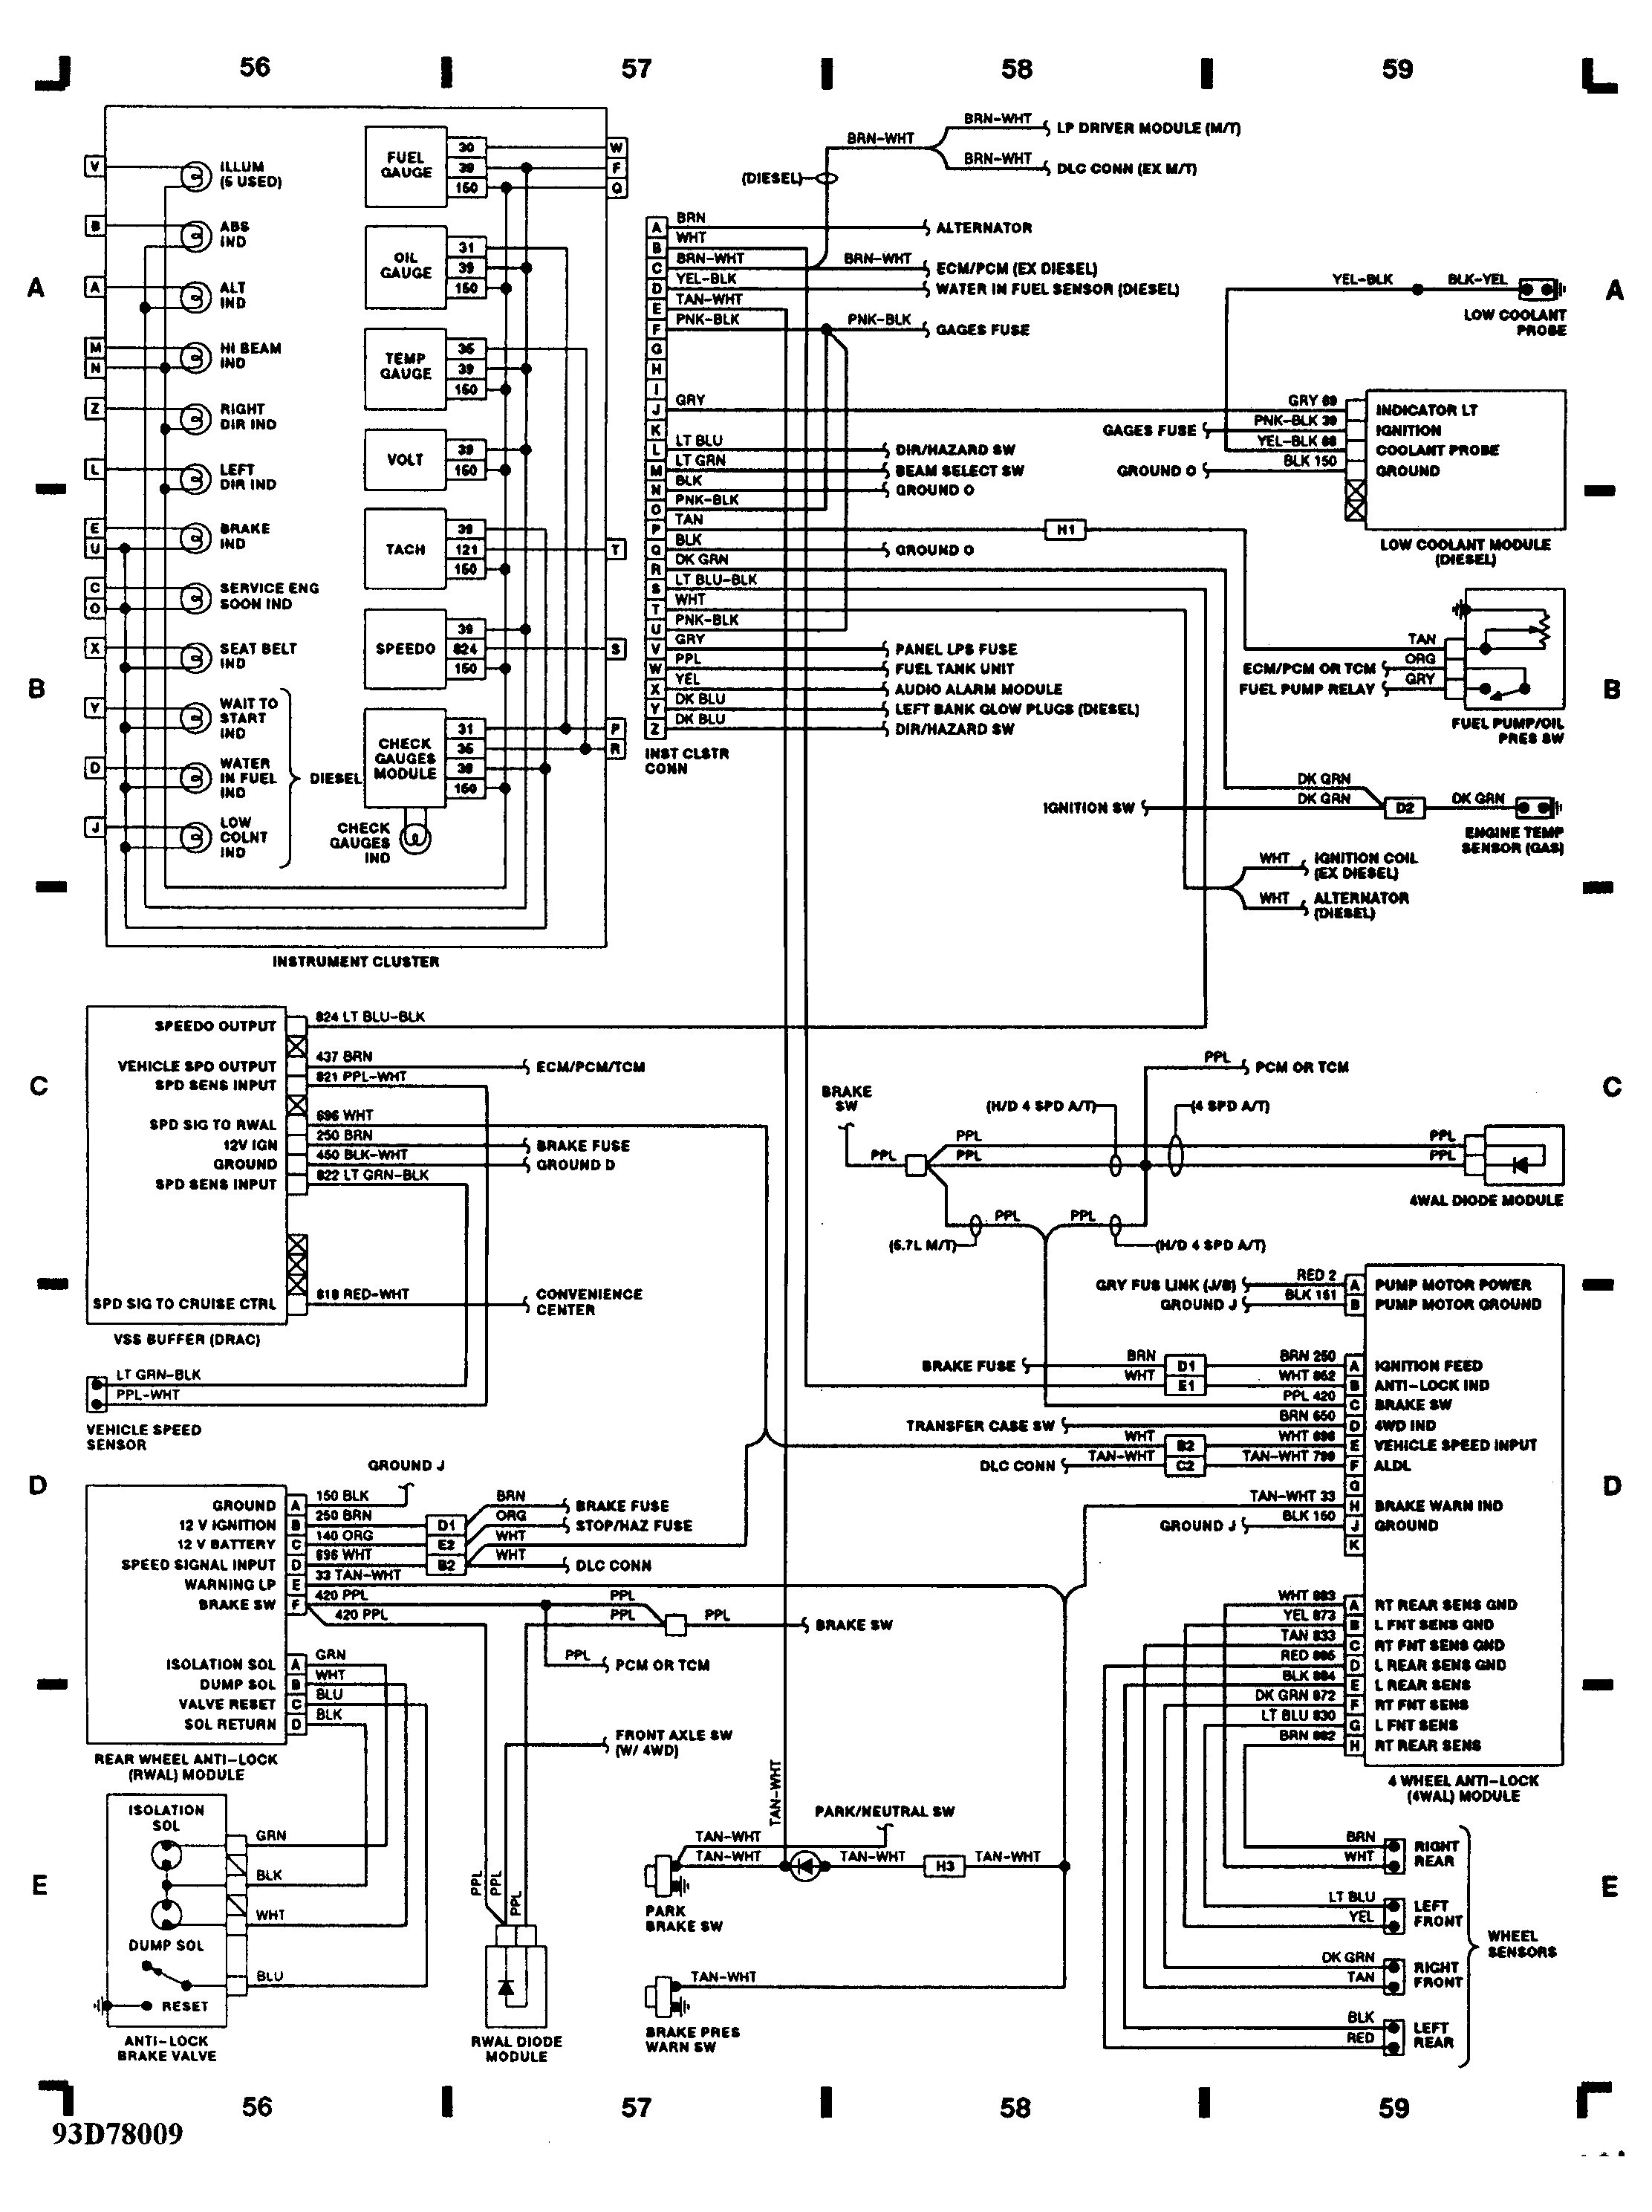 86 Silverado Wiring Diagram Worksheet And Chevrolet Caprice Chevy Nova Schematics Rh Enr Green Com Alternator